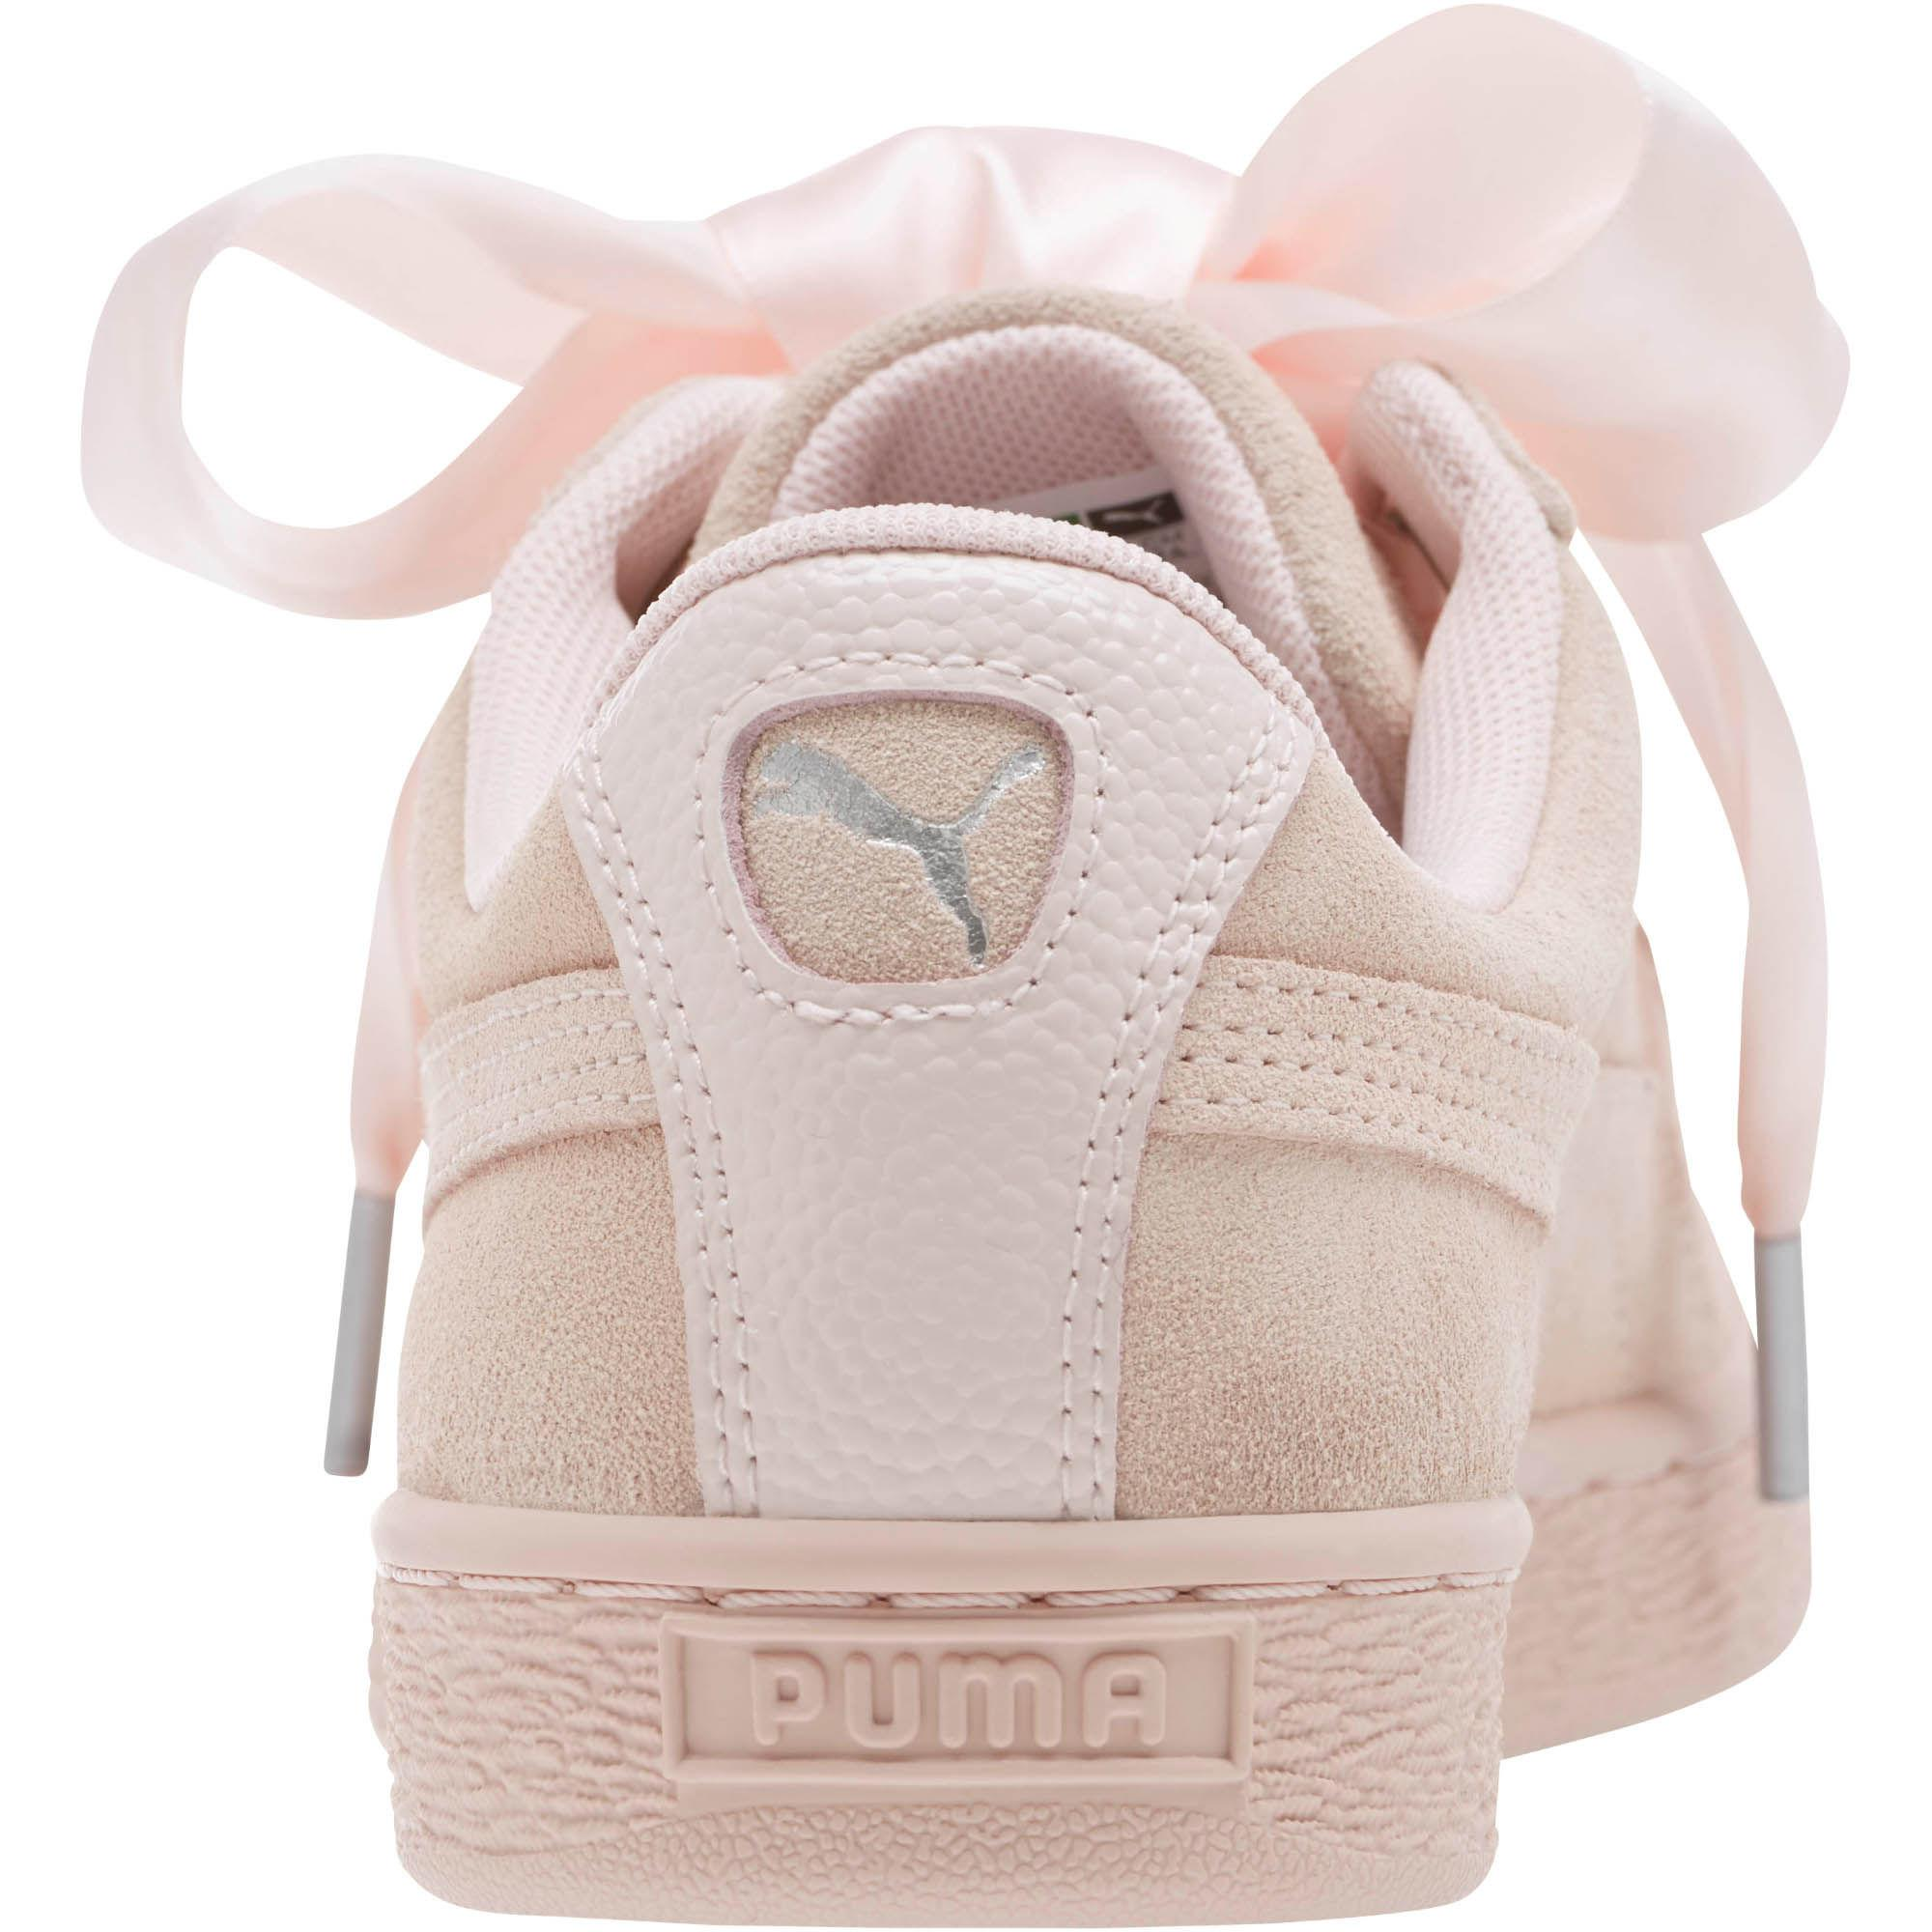 Lyst In Heart Sneakers Bubble Suede Women's Puma Pink rwrqFZOx